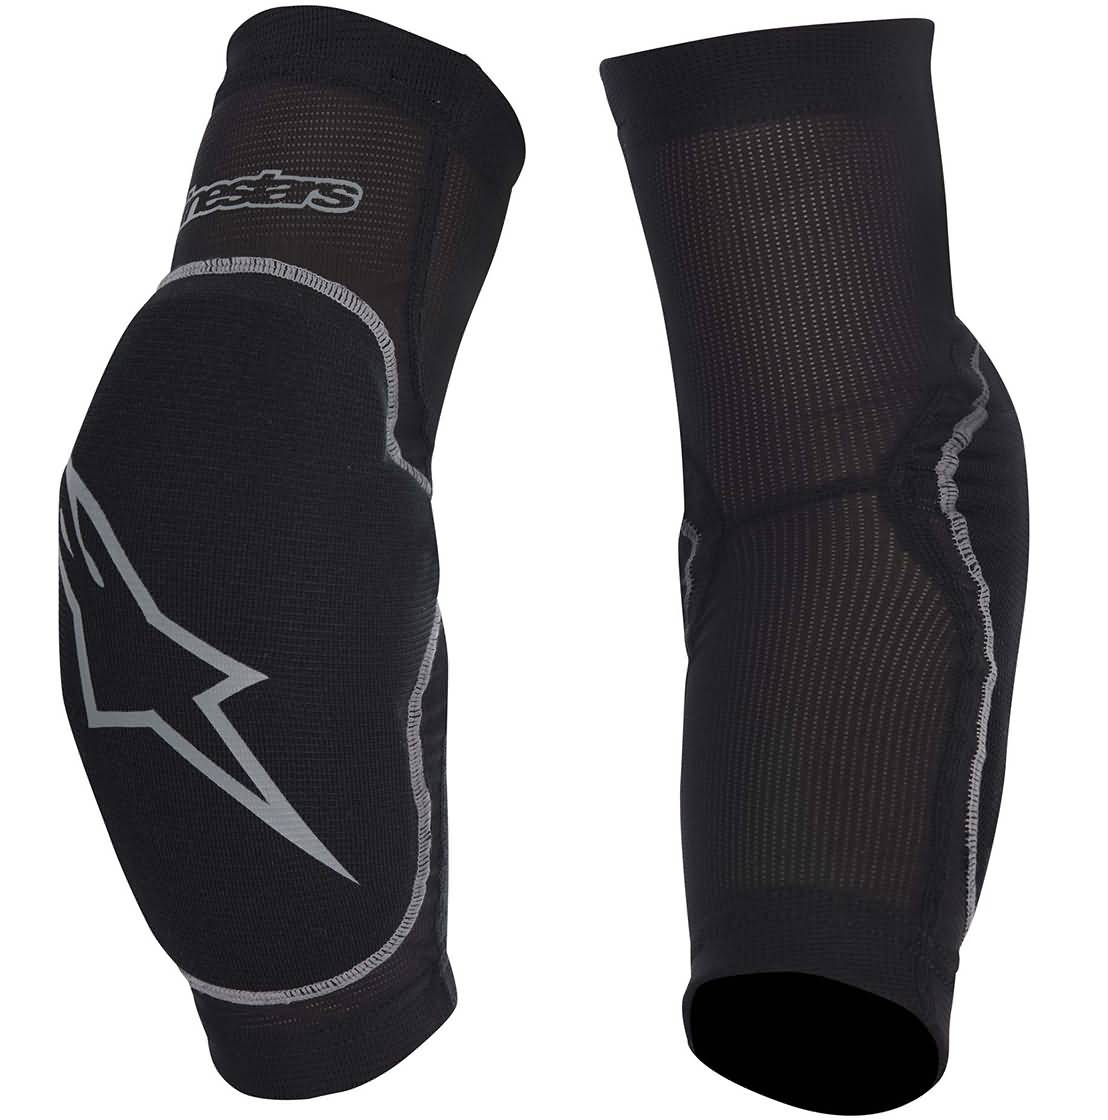 Alpinestars 2017 Cycling | Mountain Bike Downhill Off Road Protection